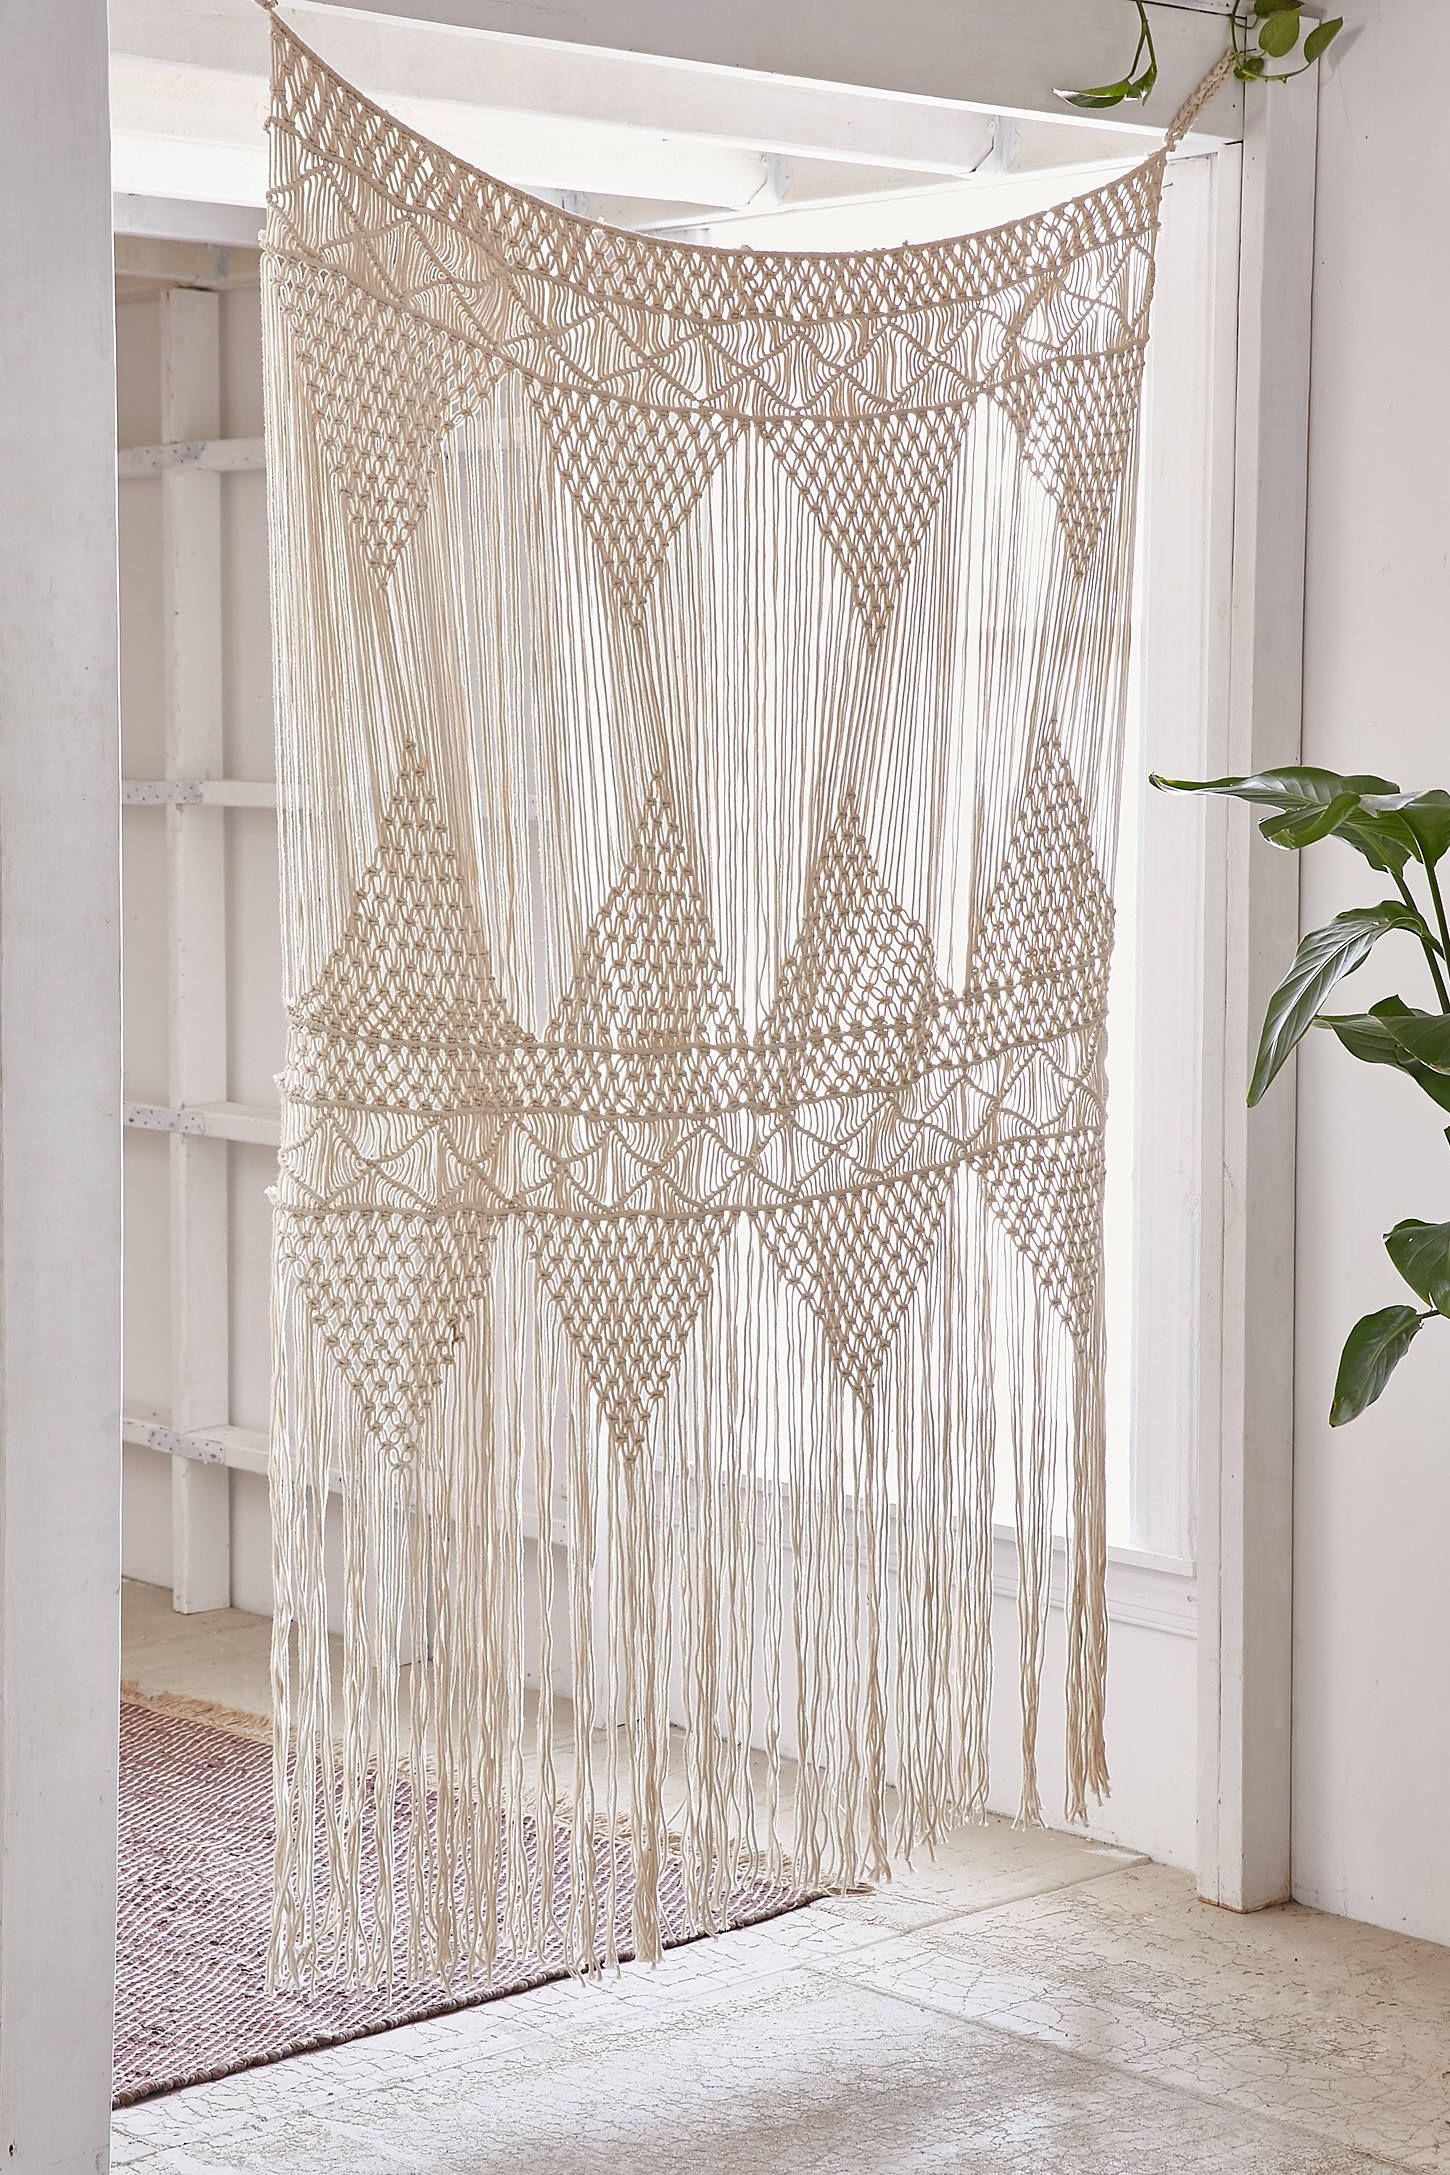 Magical Thinking Safi Wall Hanging Urban Outfitters Macrame